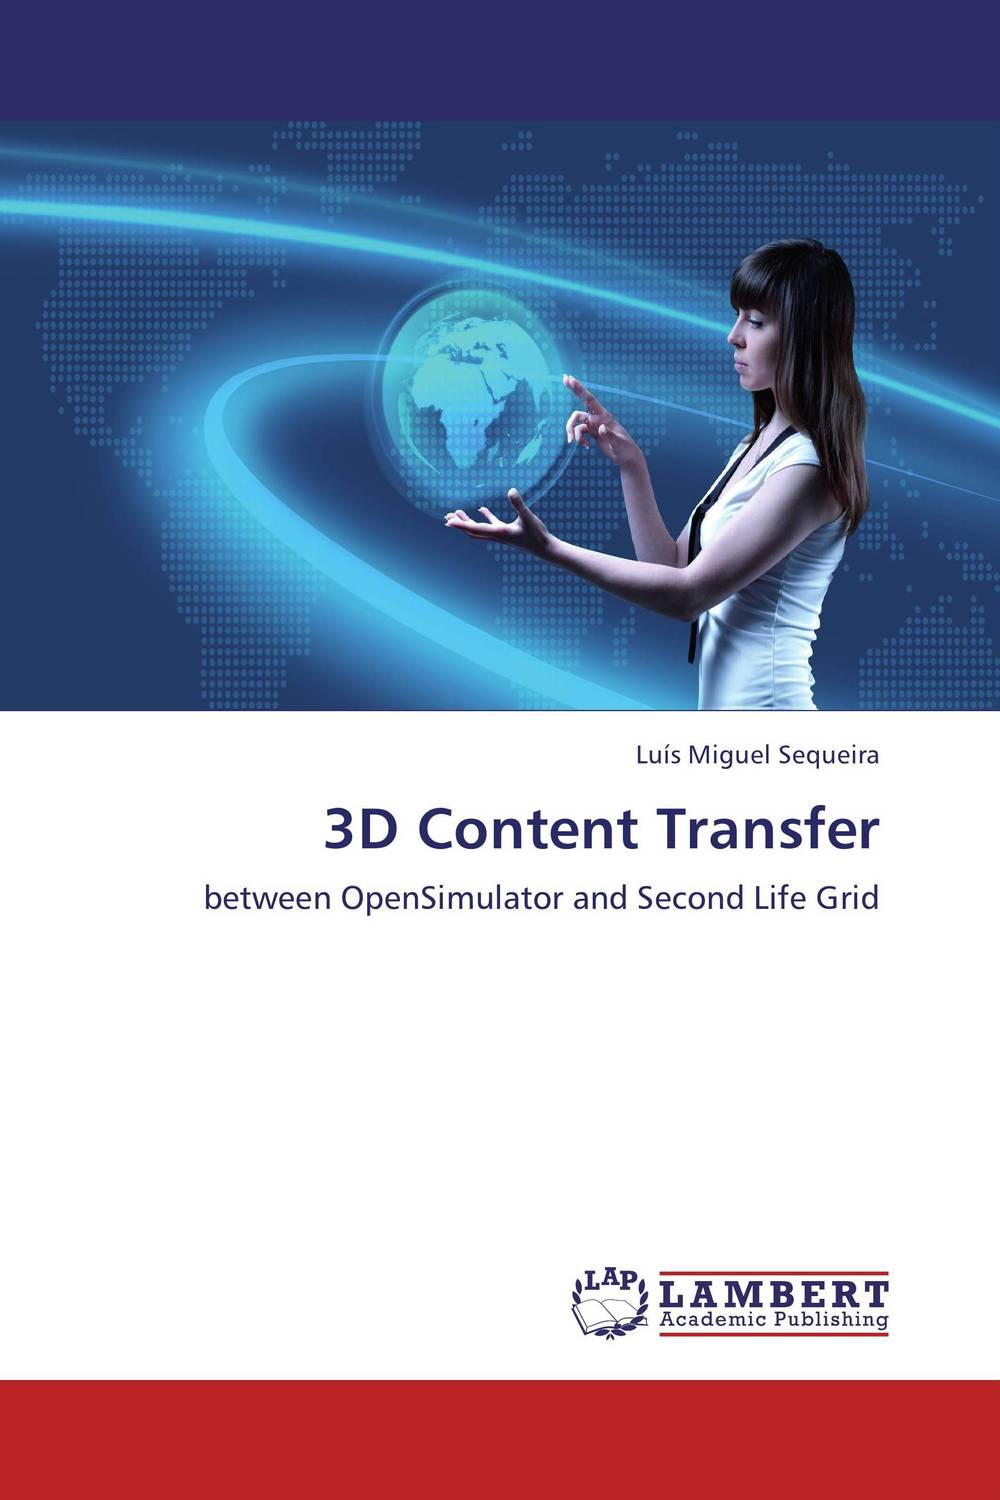 3D Content Transfer firas abdullah thweny al saedi and fadi khalid ibrahim al khalidi design of a three dimensional virtual reality environment